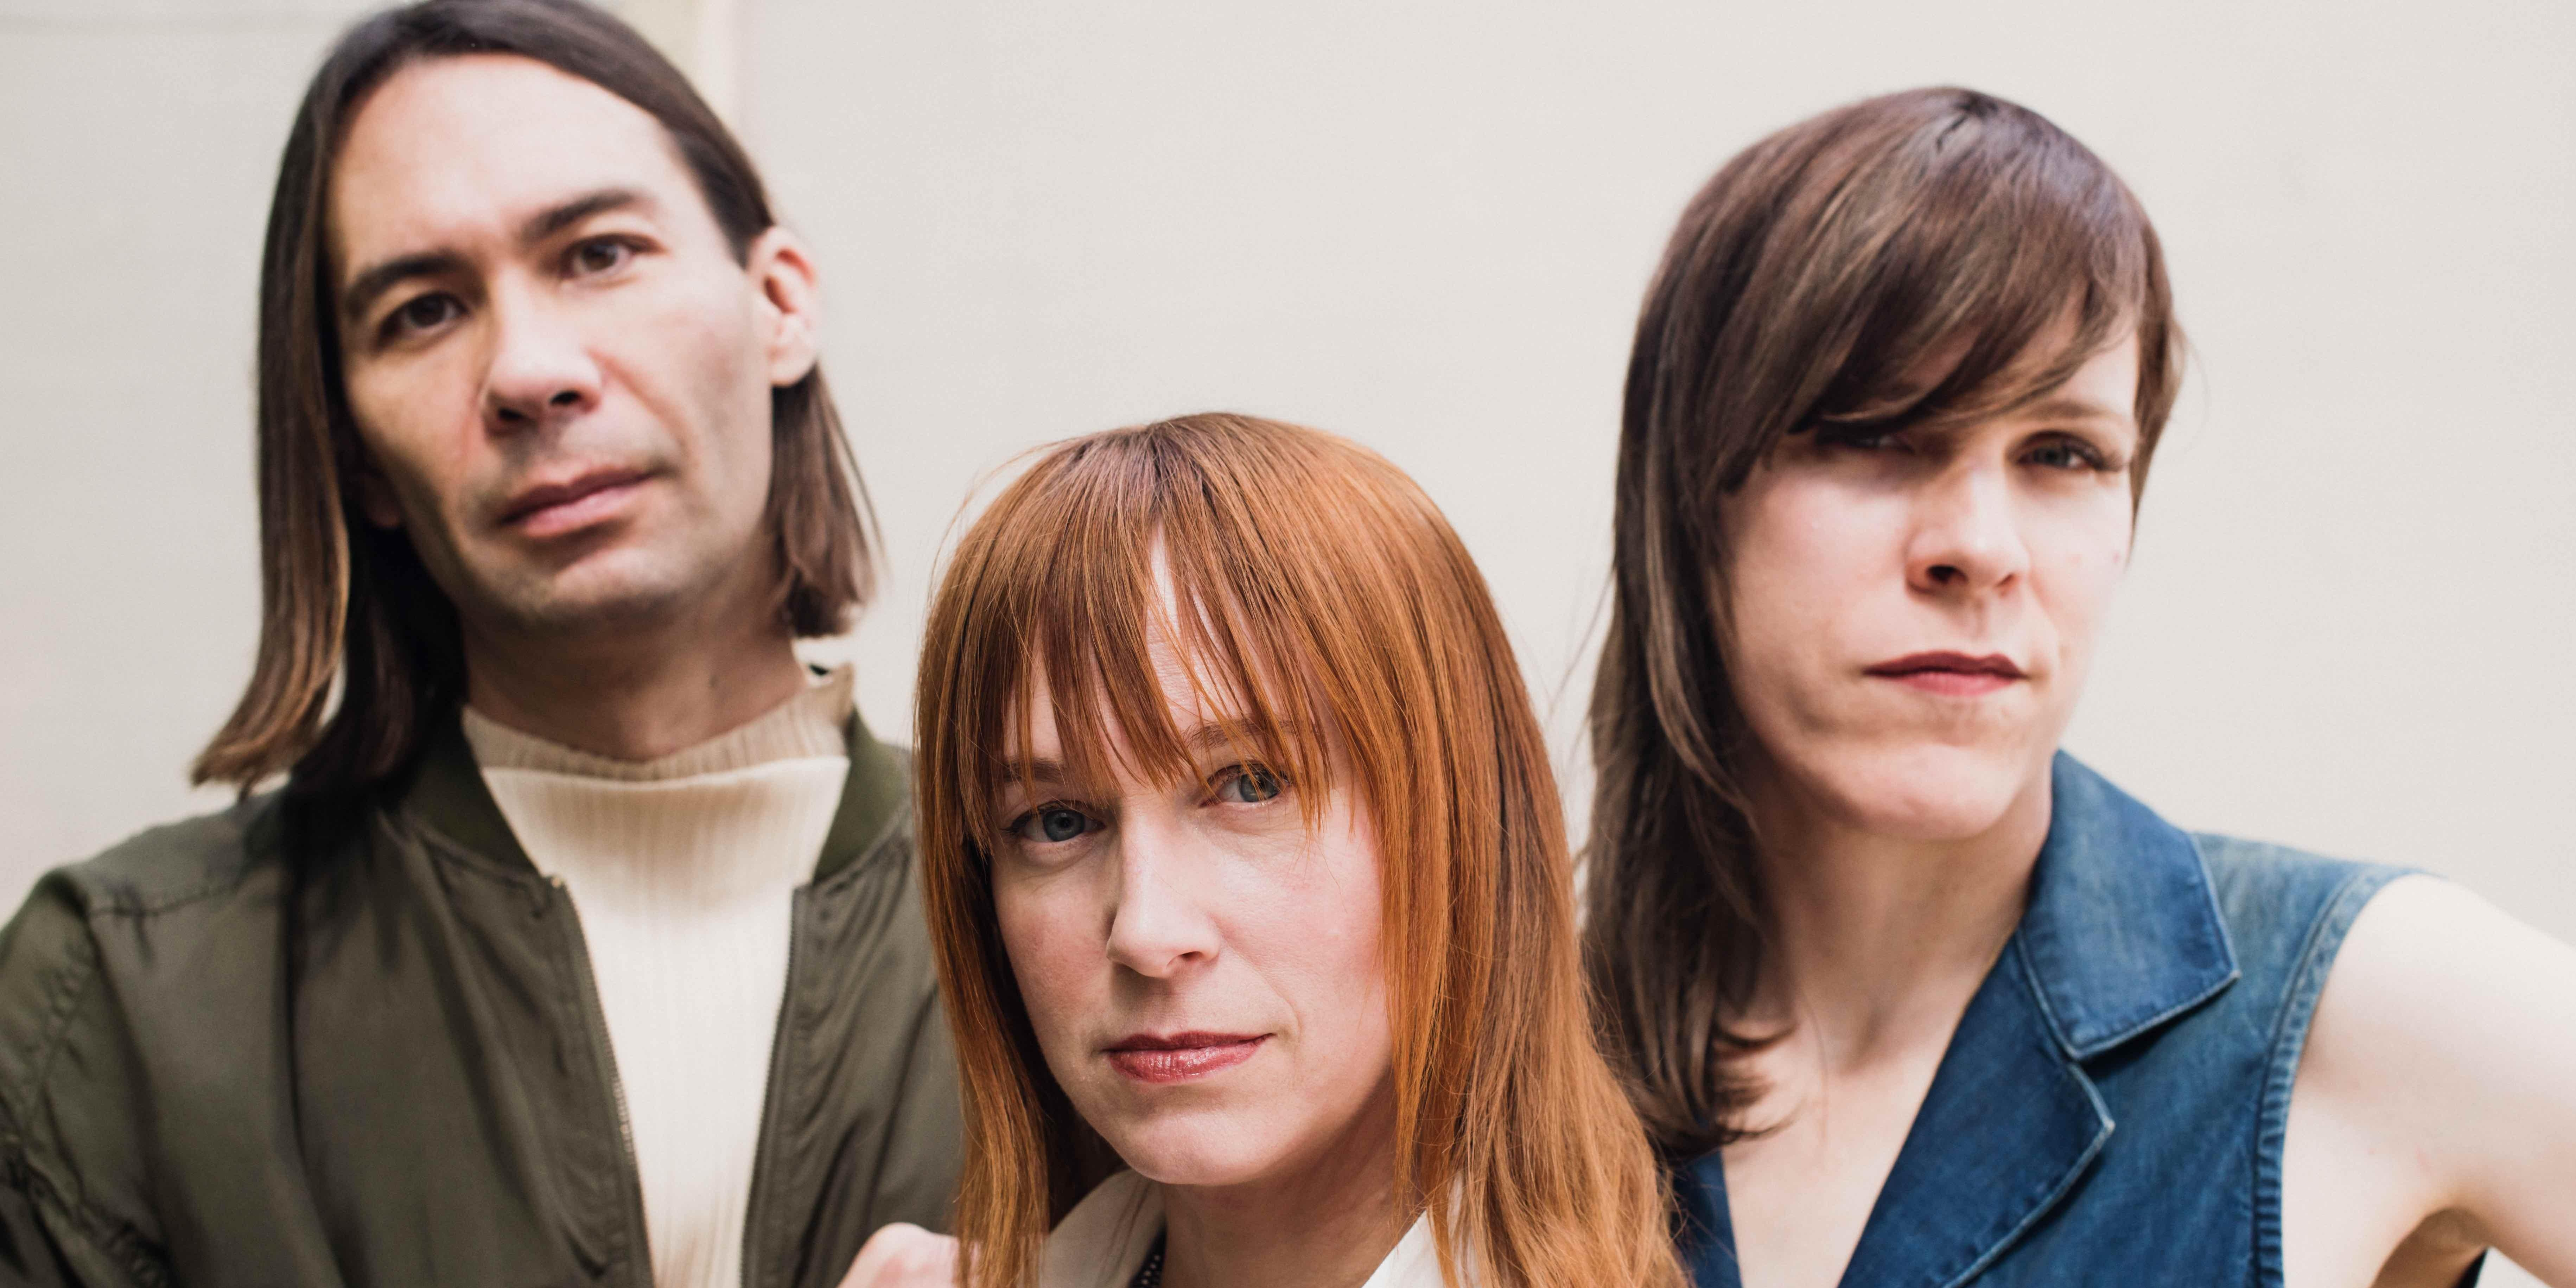 Rainer Maria's show in Singapore tomorrow cancelled